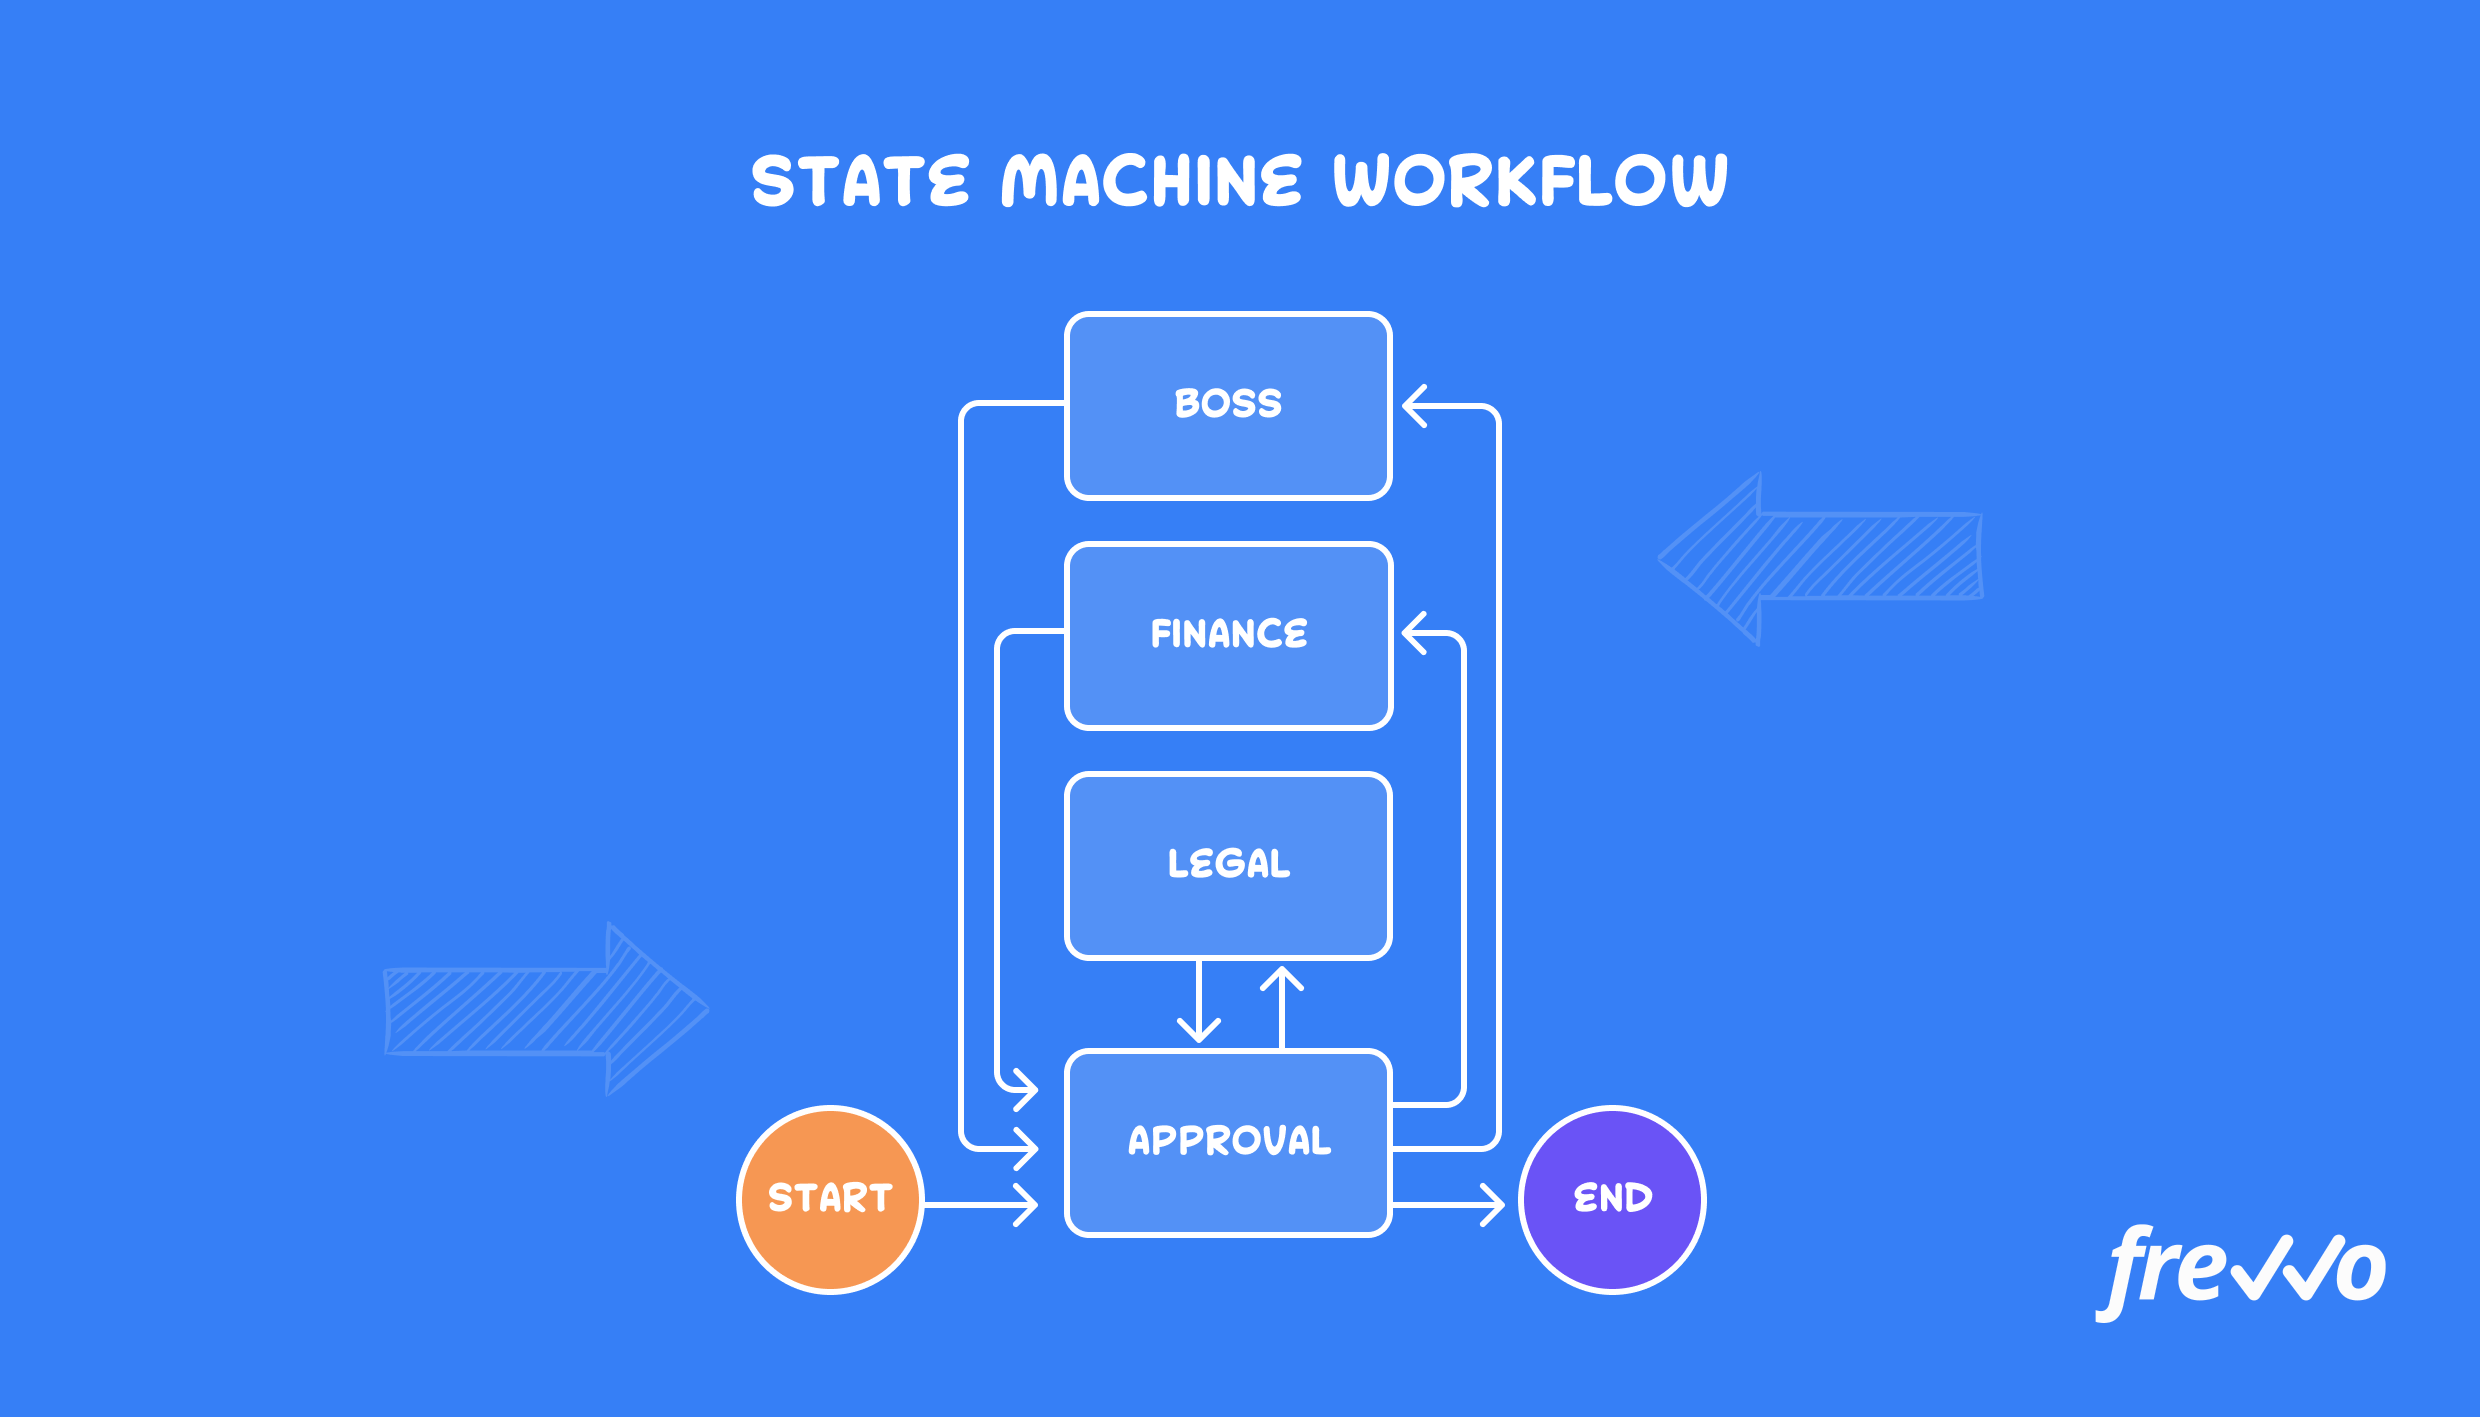 State machine workflow example